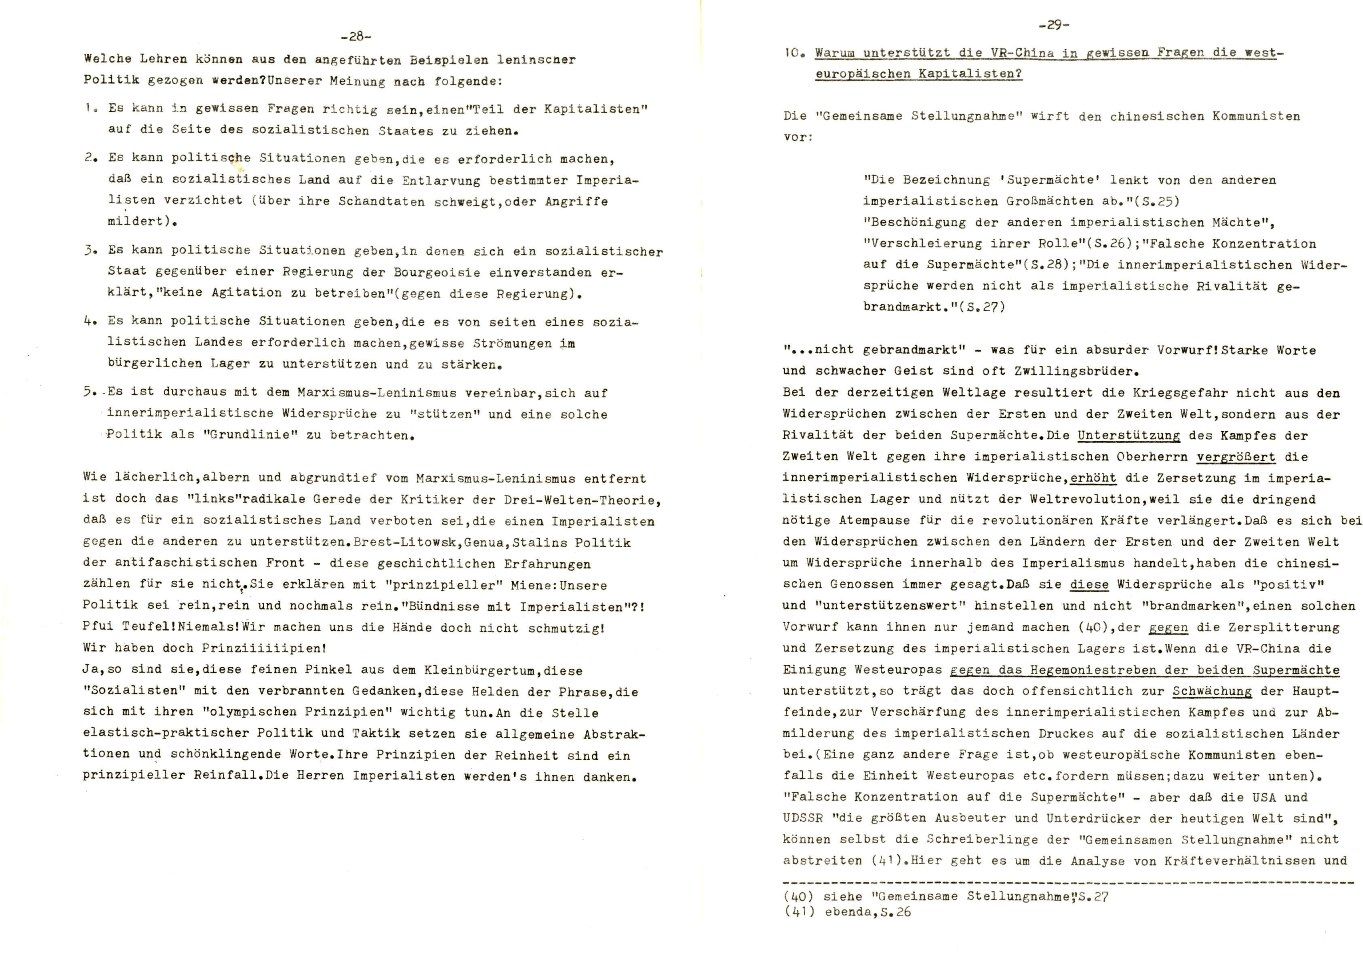 Muenchen_Kampf_dem_Revisionismus_1978_04_05_16